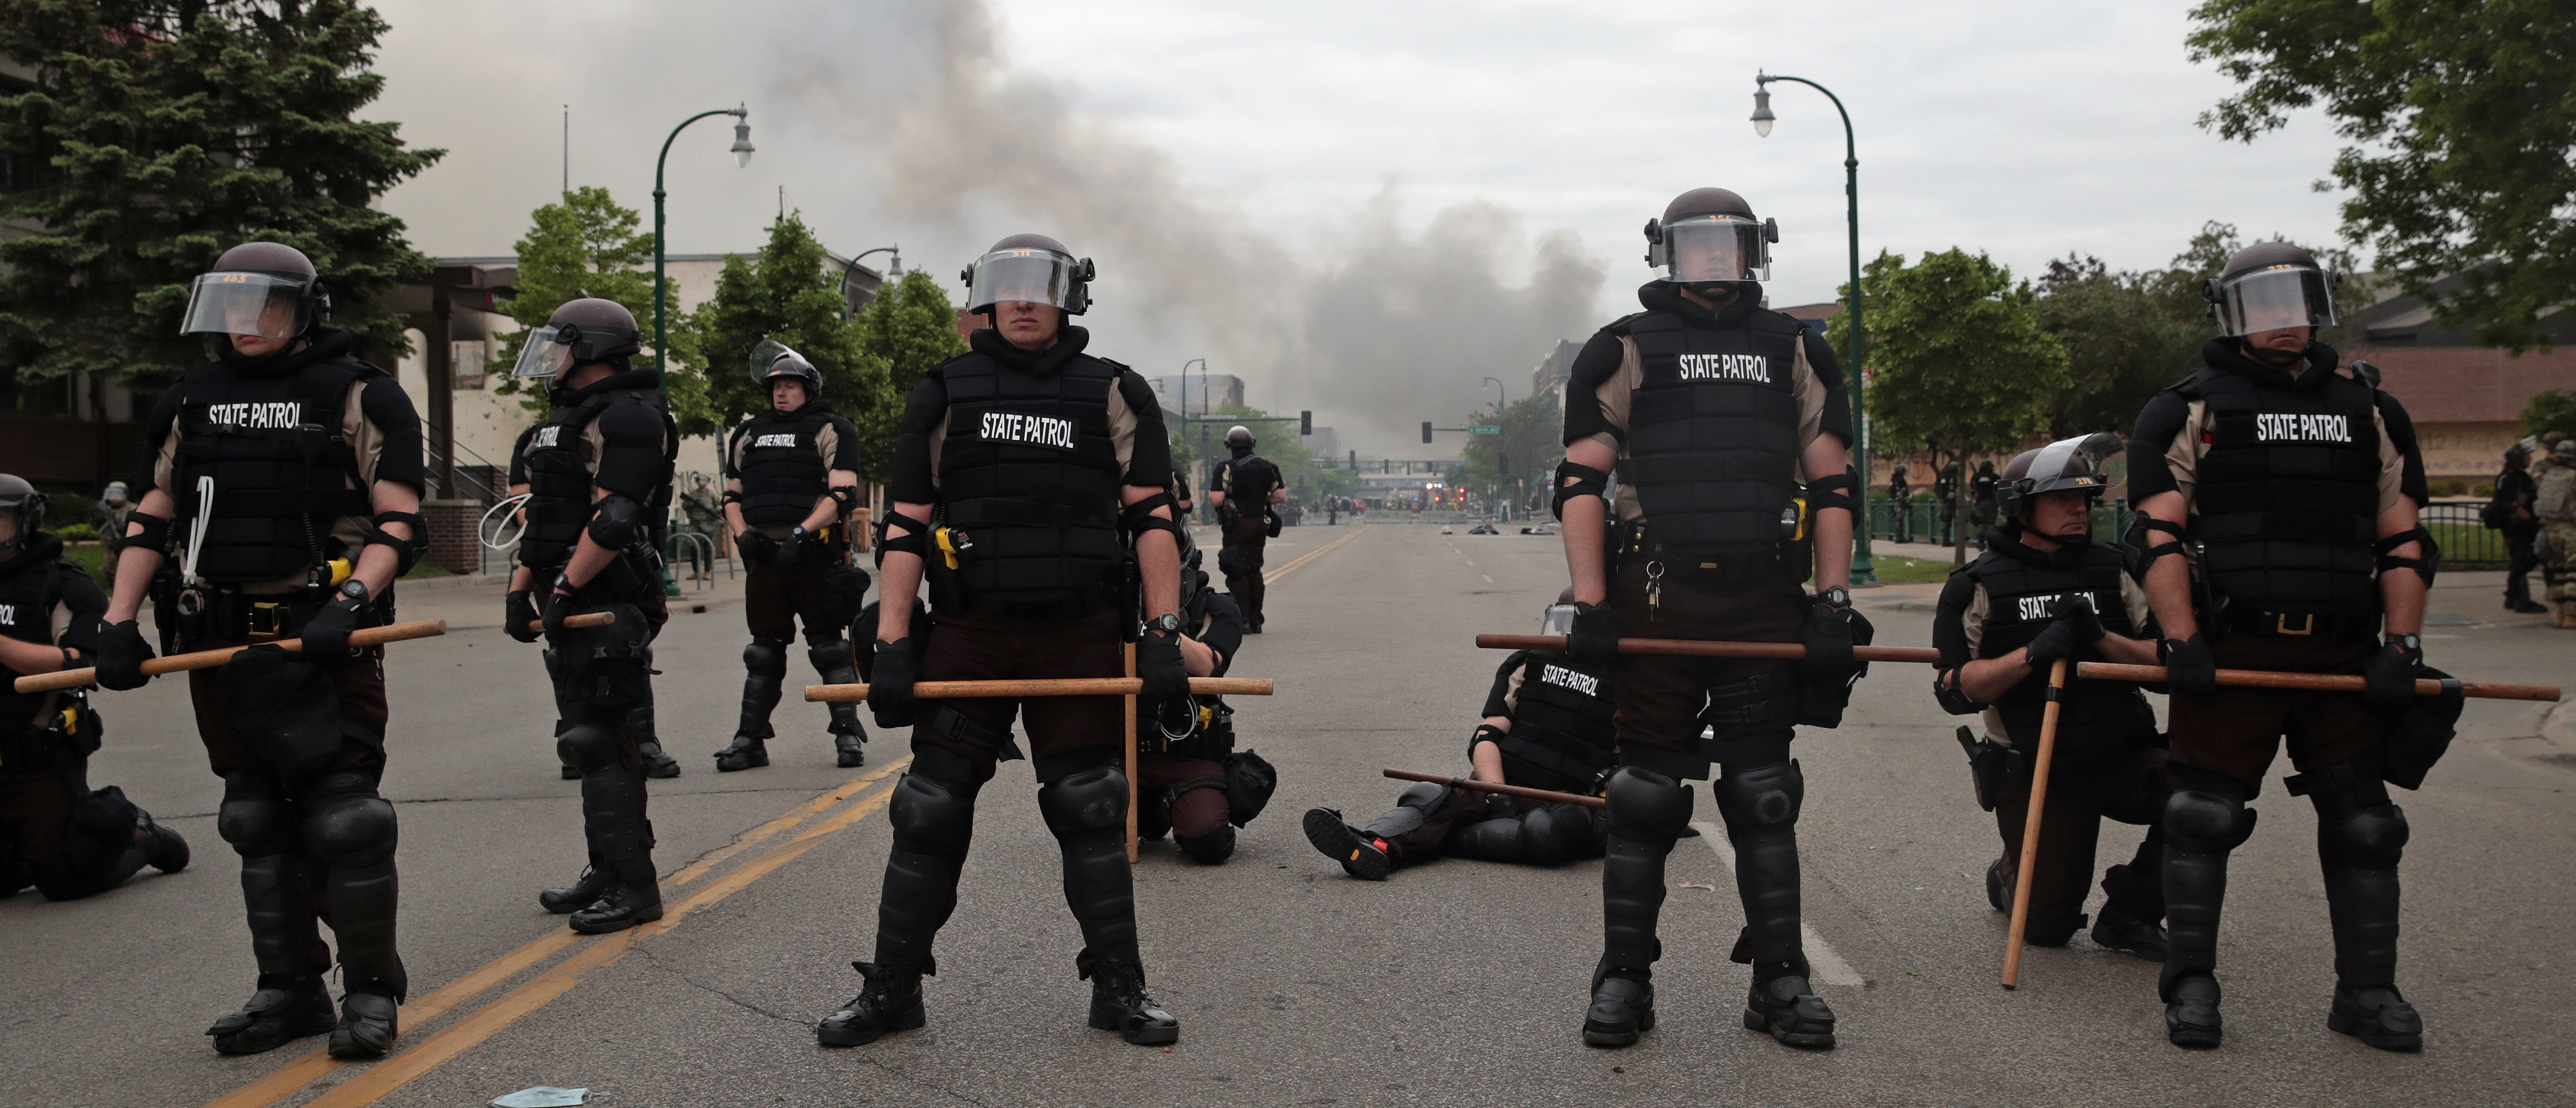 Police officers block a road on the fourth day of protests on May 29, 2020 in Minneapolis, Minnesota. The National Guard has been activated as protests continue after the death of George Floyd which has caused widespread destruction and fires across Minneapolis and St. Paul. (Photo by Scott Olson/Getty Images)